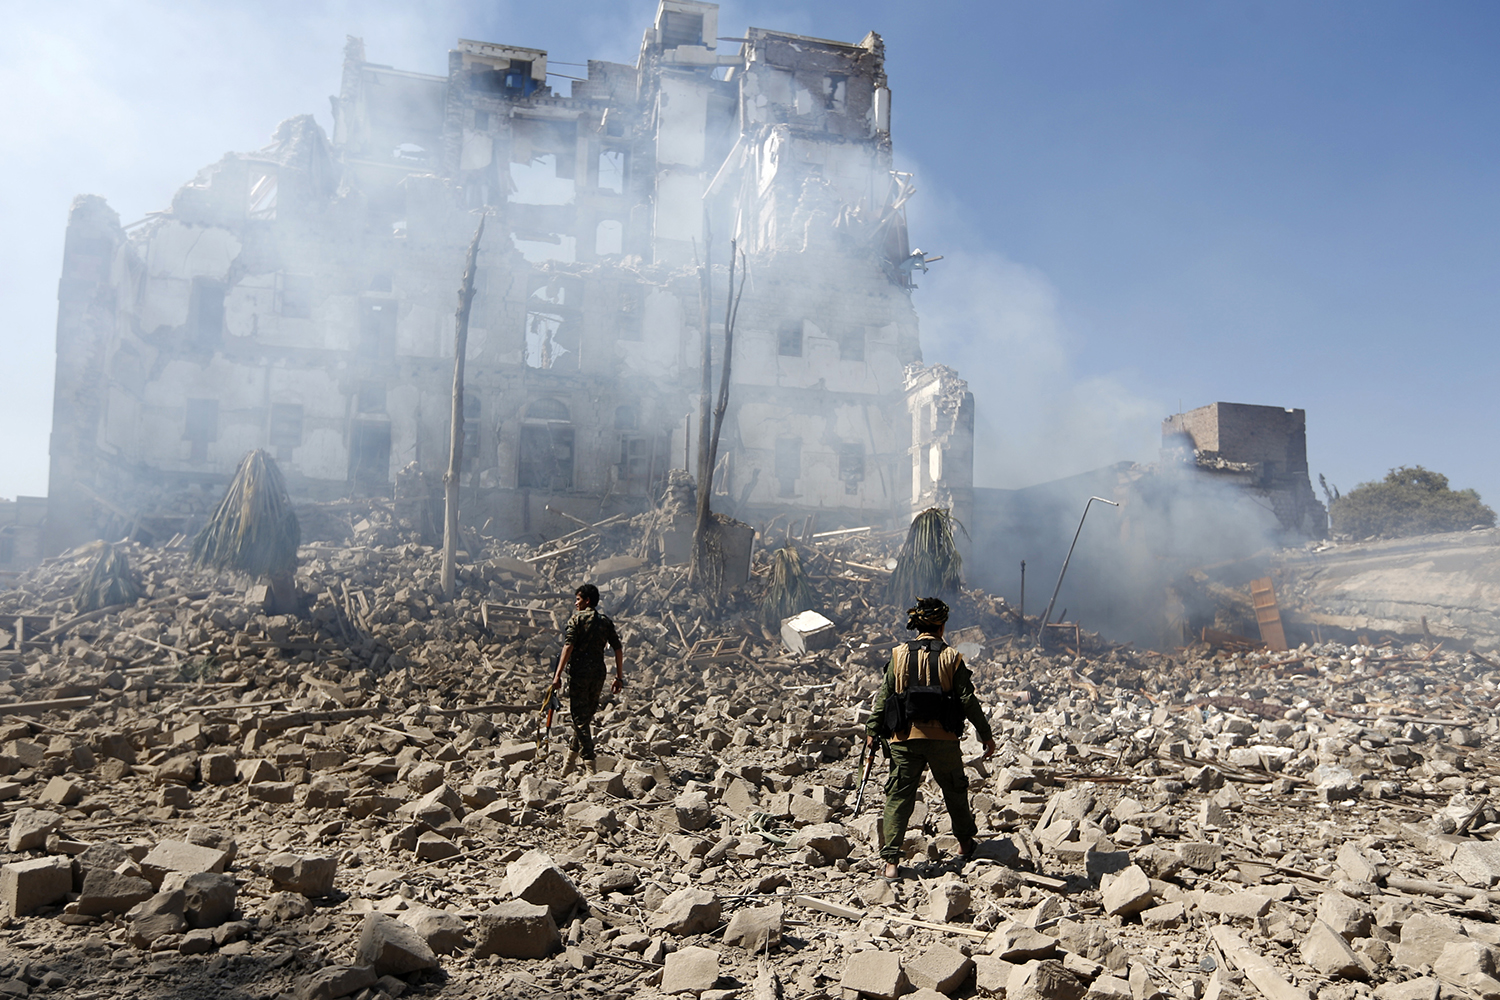 Huthi rebel fighters inspect the damage after a reported air strike carried out by the Saudi-led coalition targeted the presidential palace in the Yemeni capital Sanaa on Dec. 5, 2017.